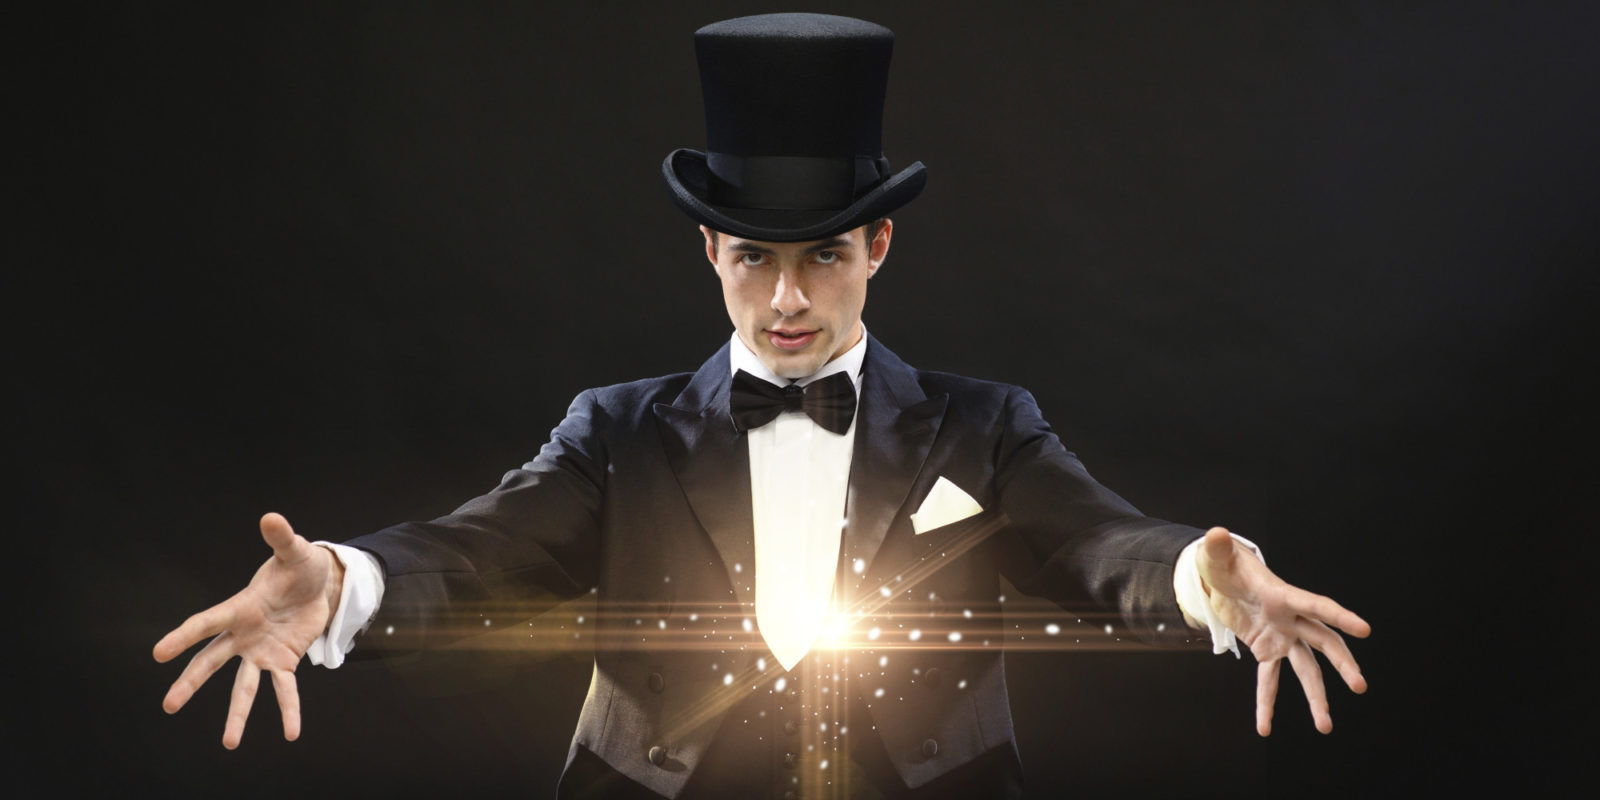 A magician in a top hat conjuring magic